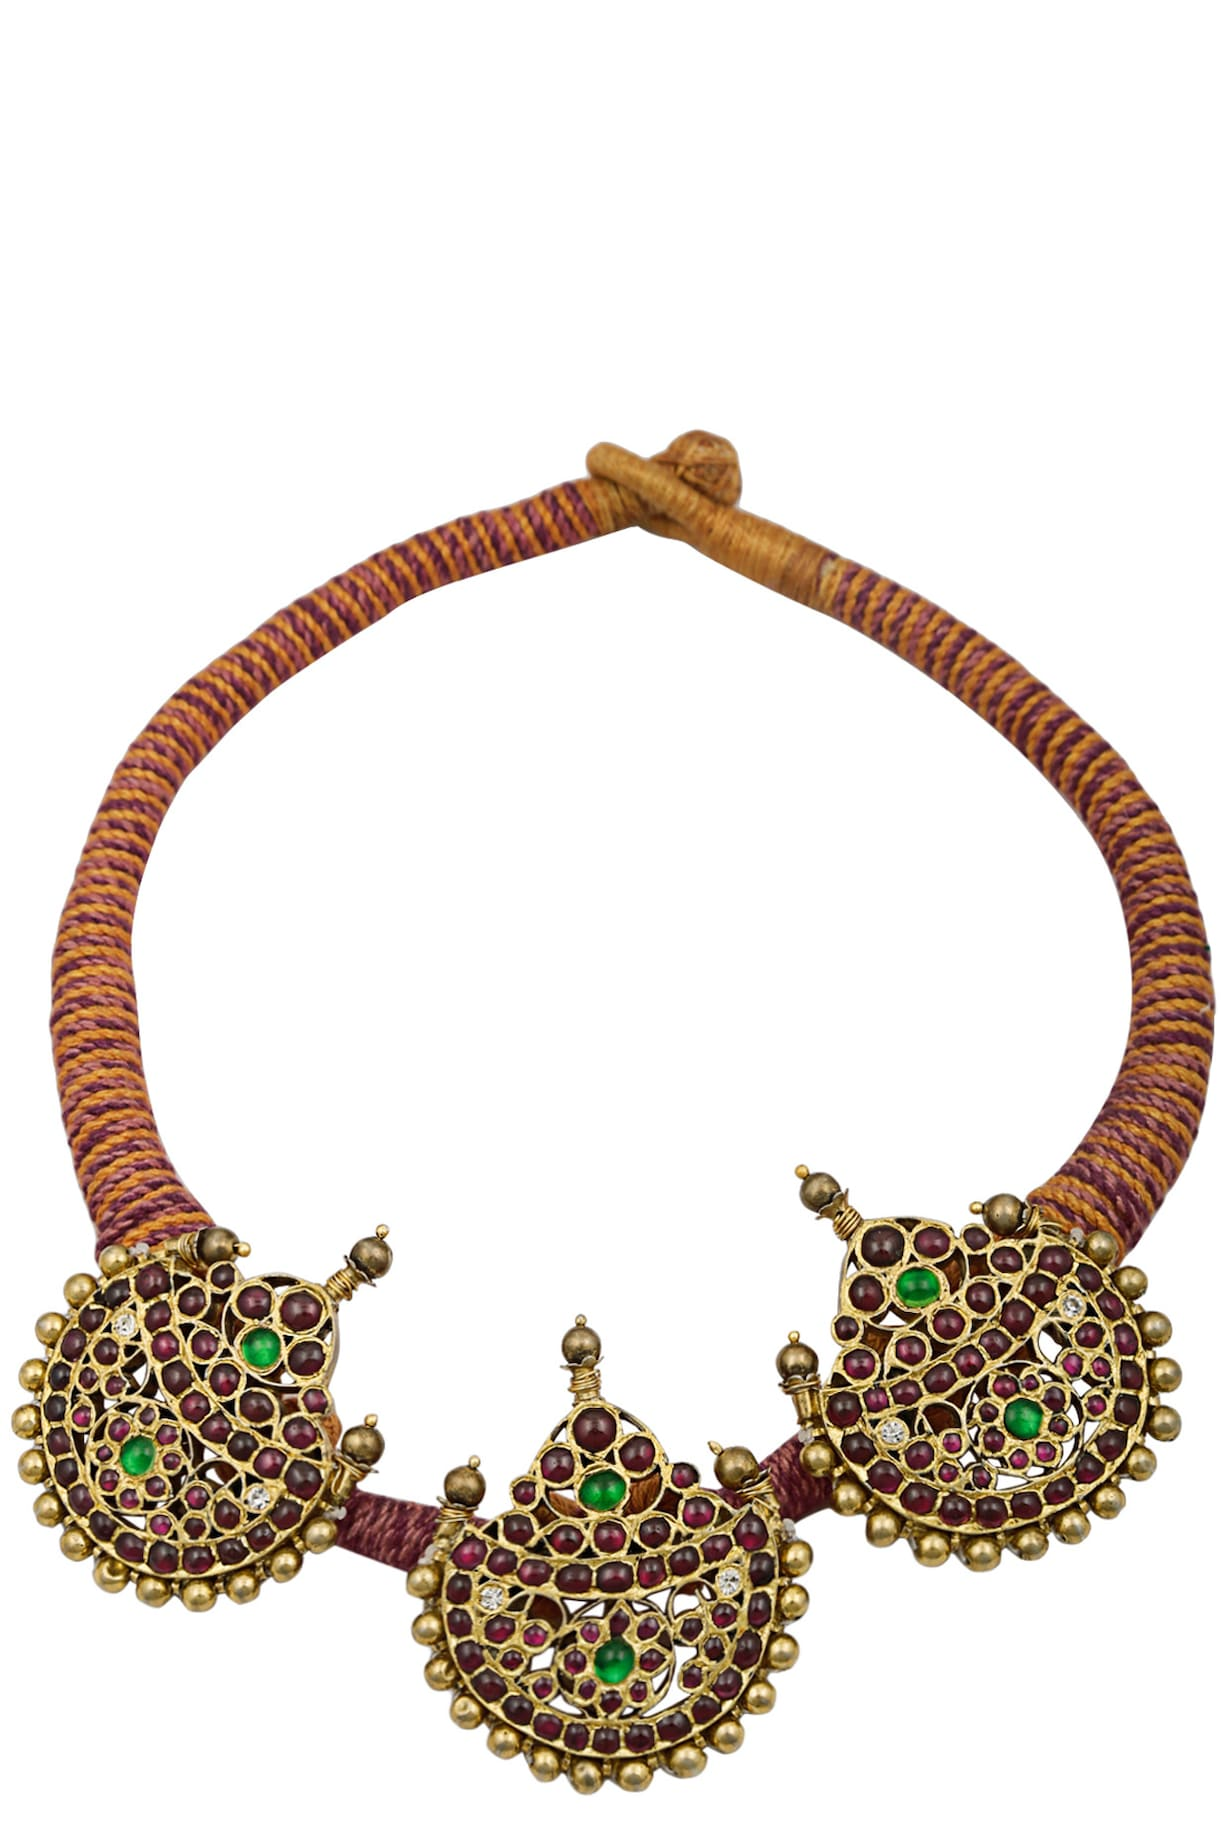 Aaharya Necklaces